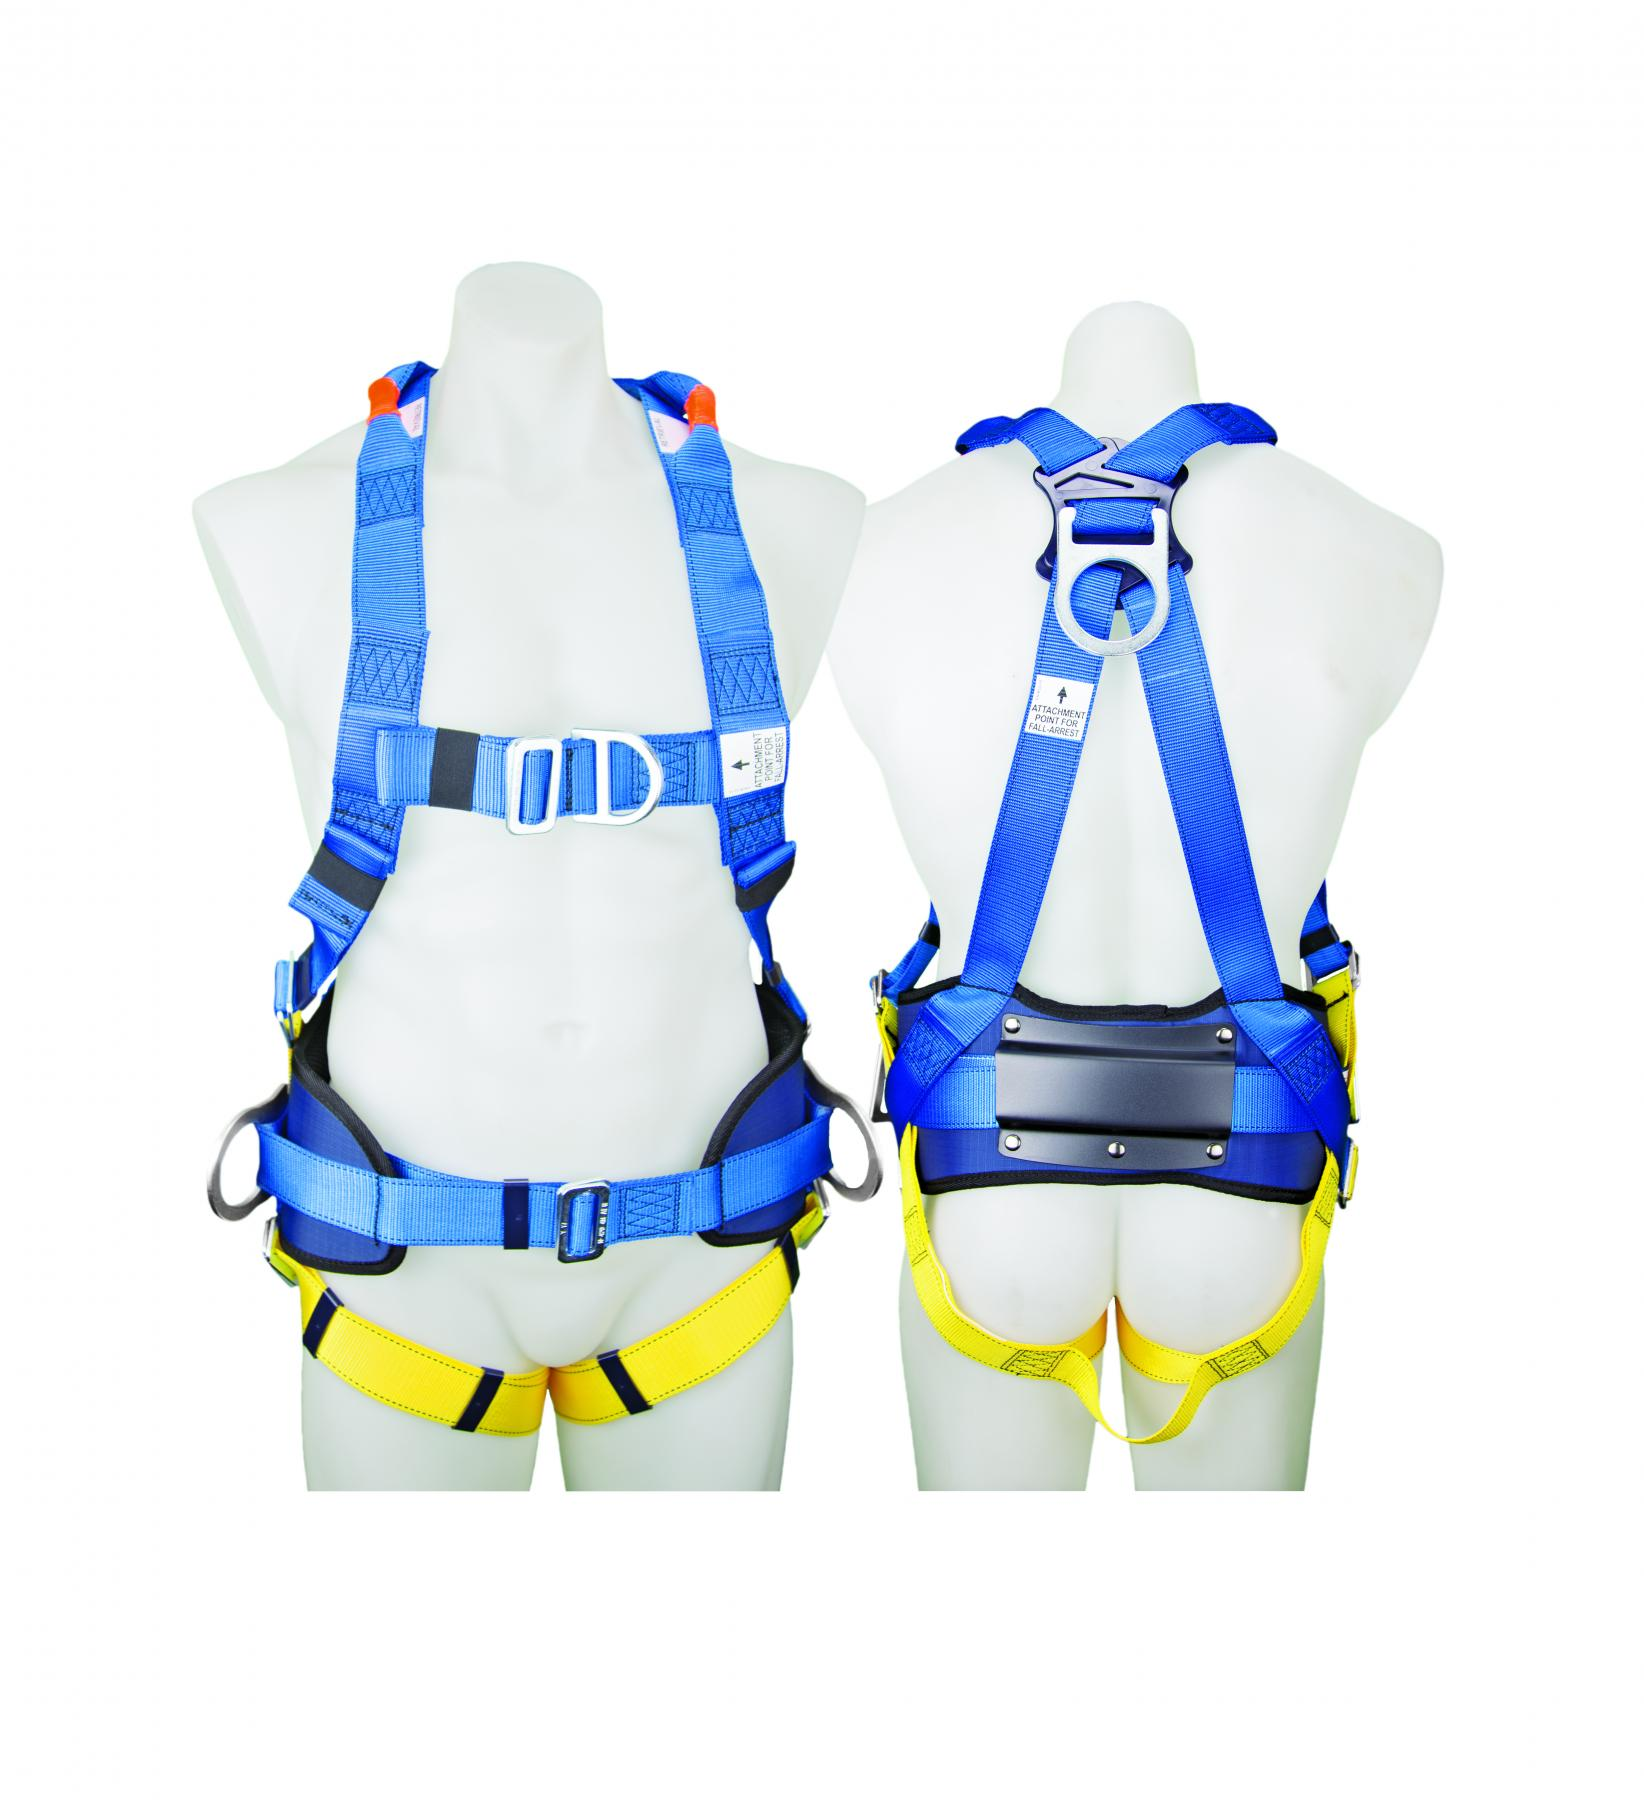 Armour Safety Products Ltd. - Protecta First Body Support - Construction Harness